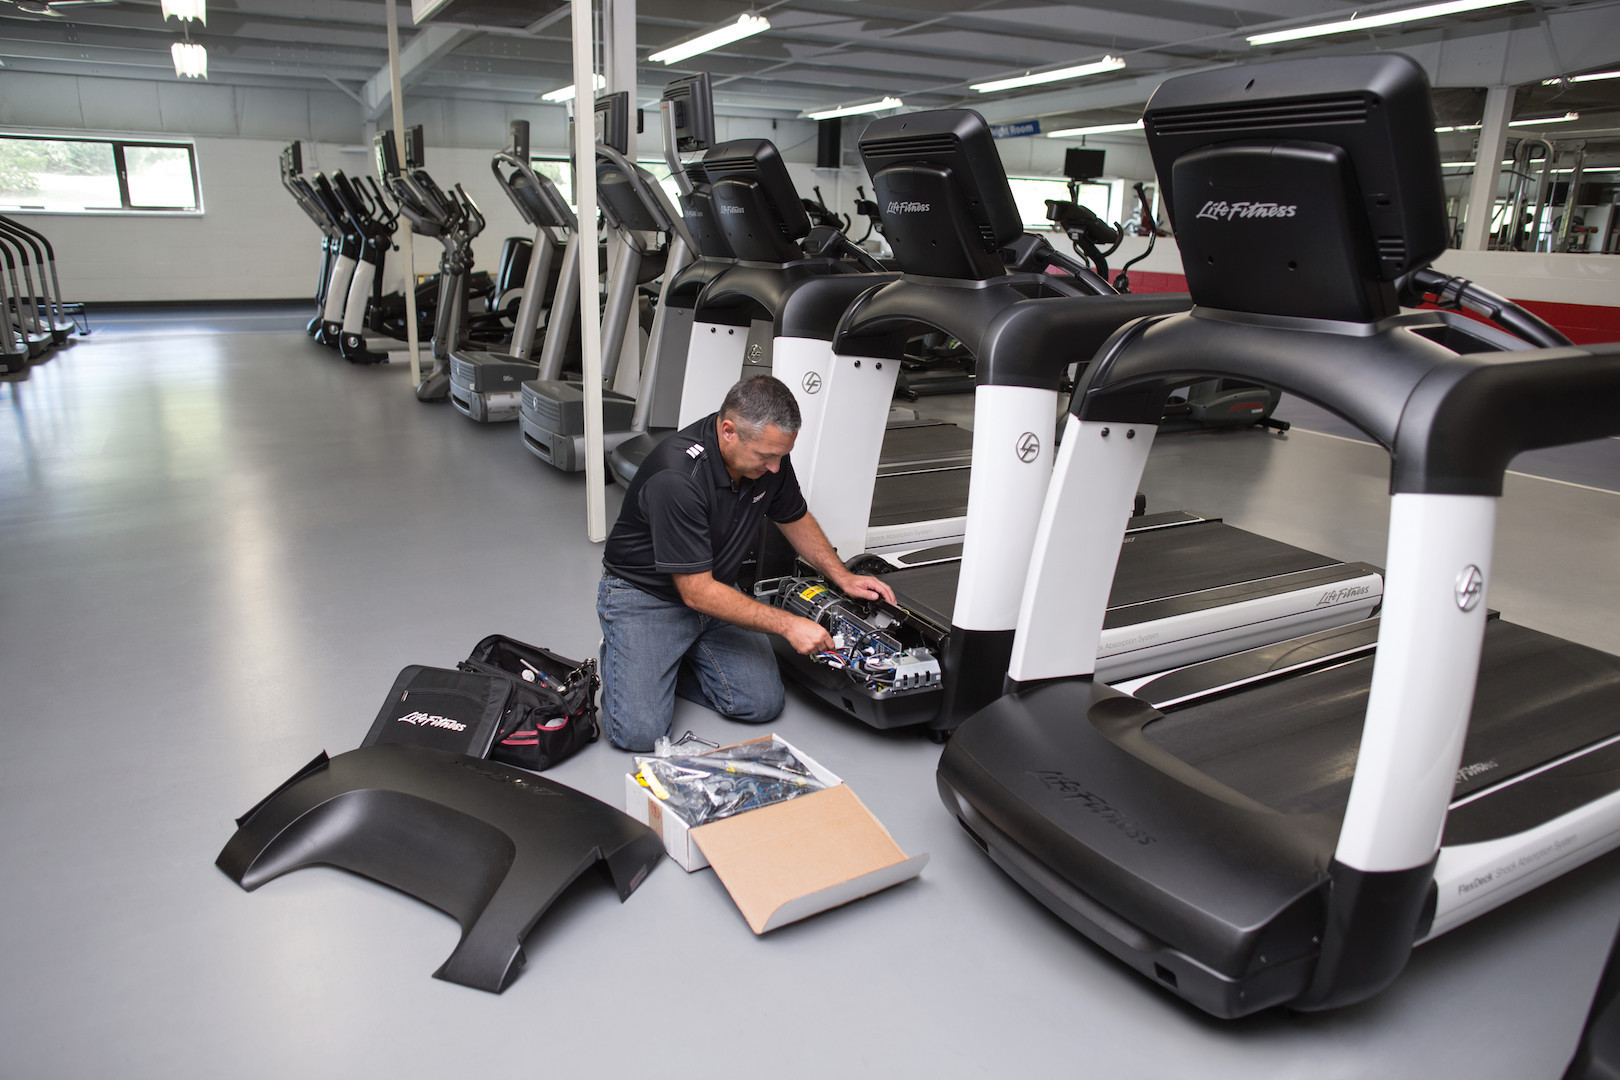 Careers at Heartline Fitness